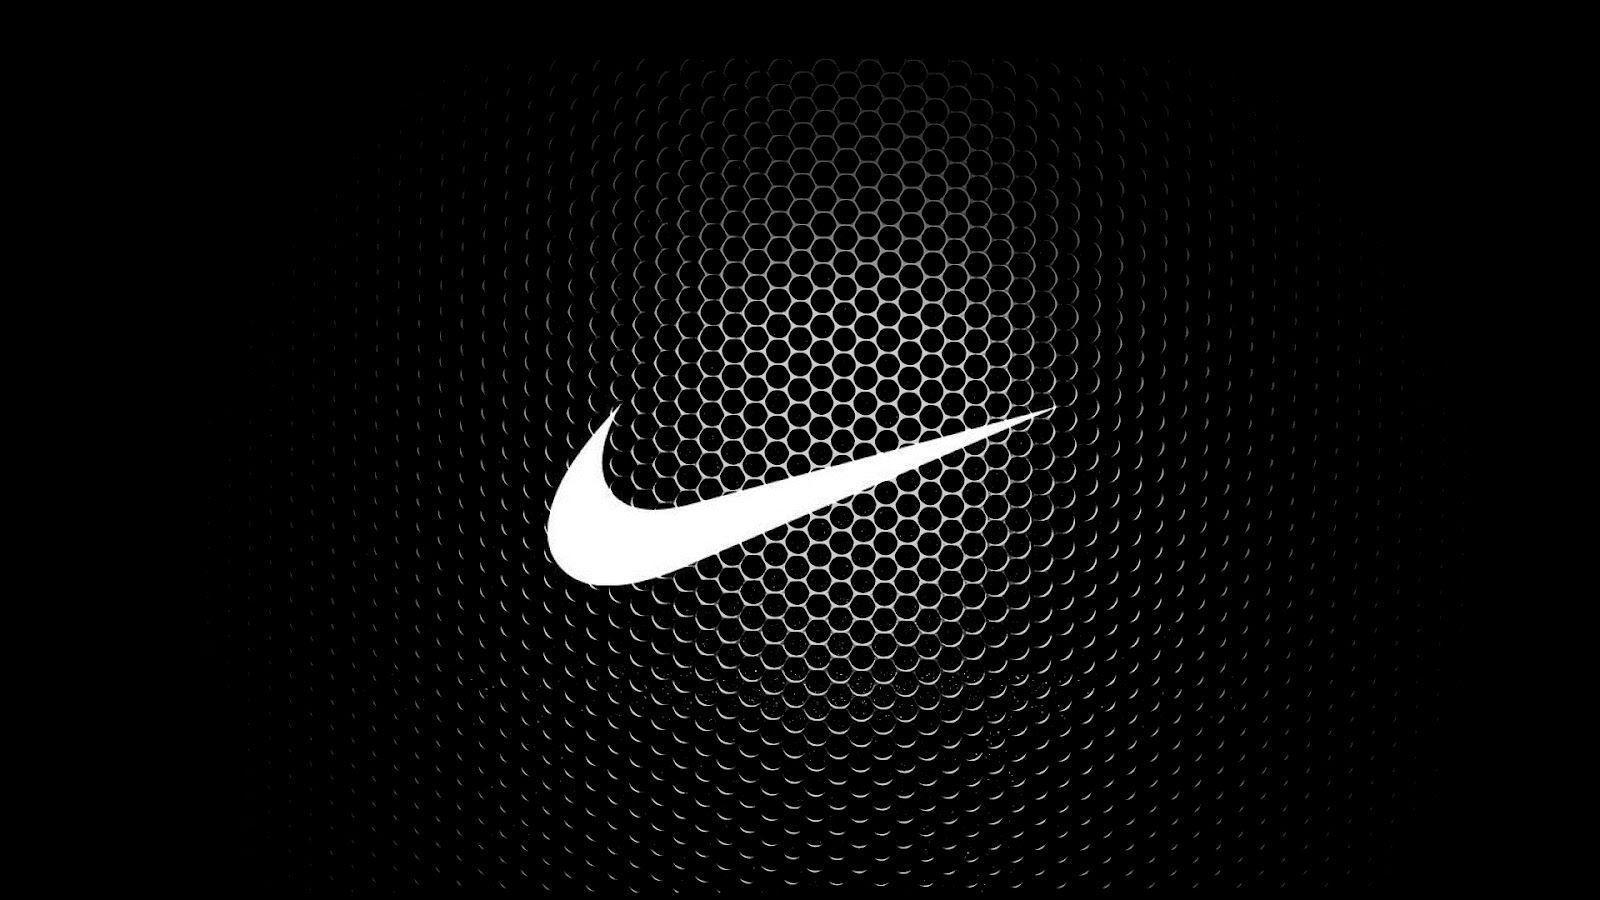 Fantastic Wallpaper Logo Nike - wc1743340  Collection_291882.jpg